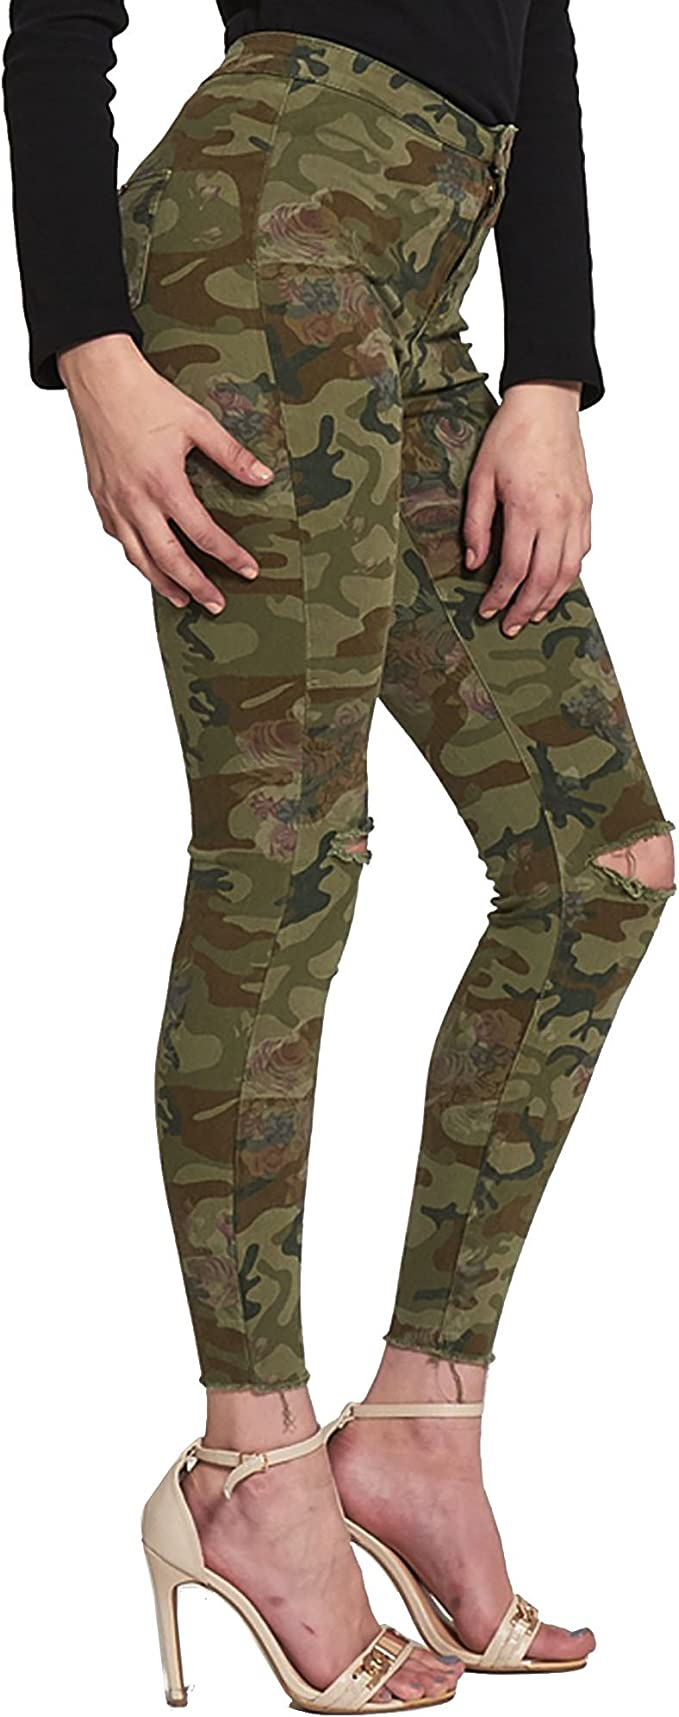 New Womens Ladies Ripped Waist Stretch Plain Camouflage Jeans Size 6-16